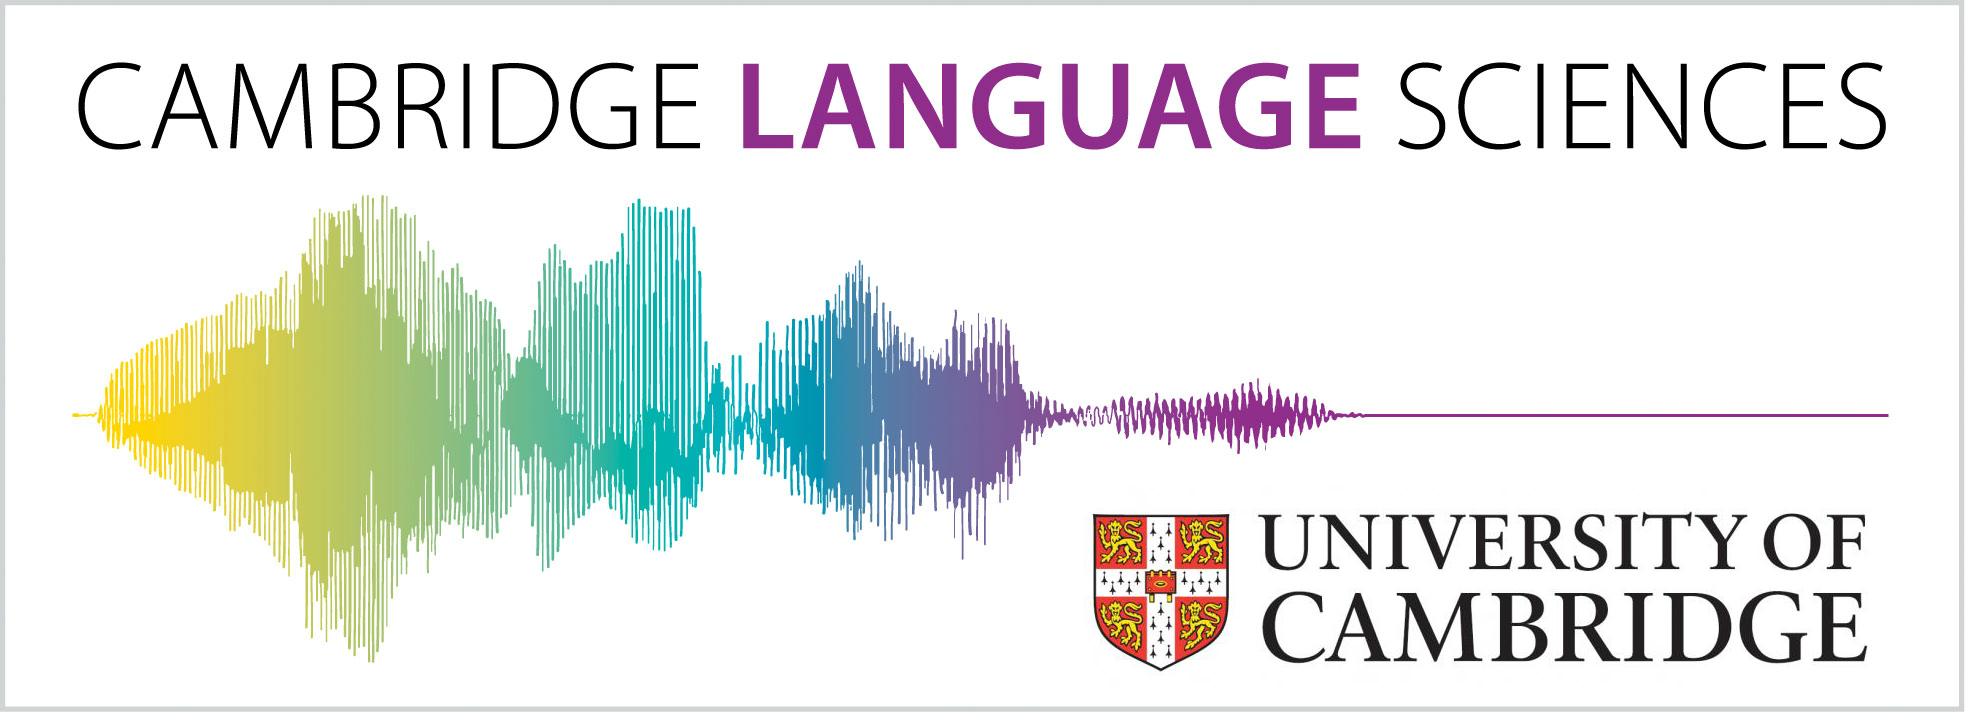 Cambridge Language Sciences & Cambridge University logo